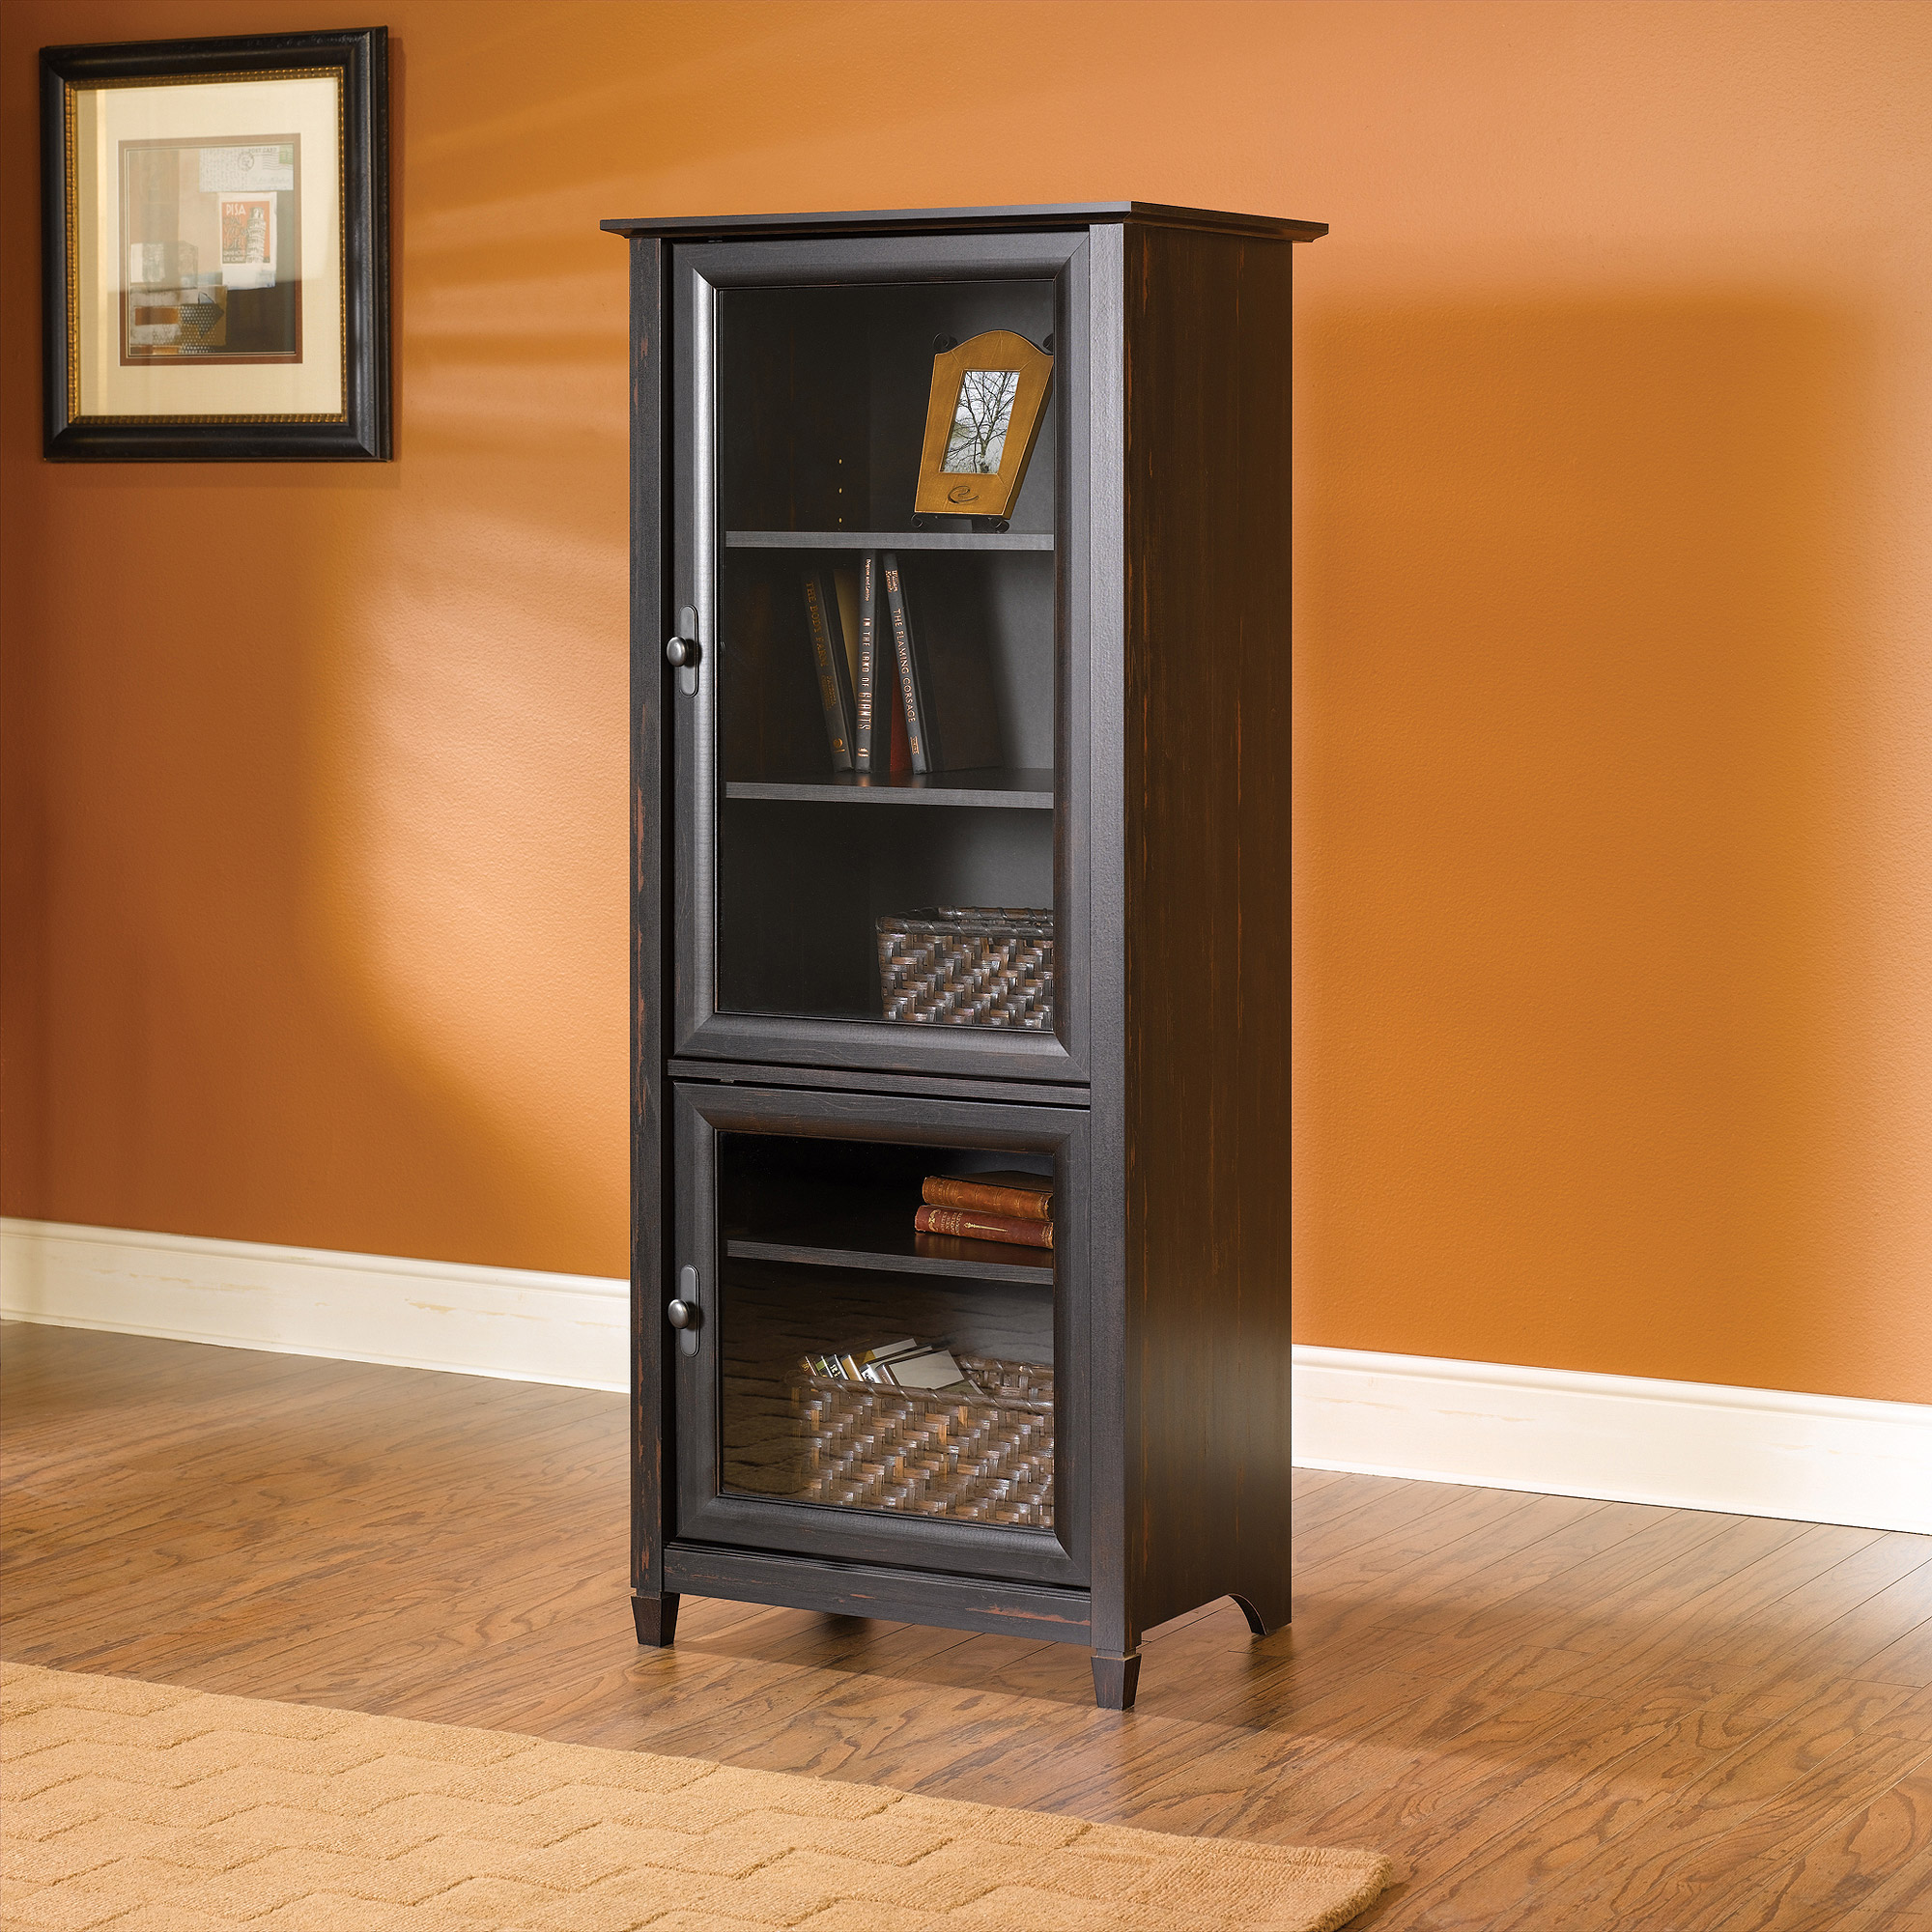 Sauder Vinegate Storage Tower, Antiqued Paint